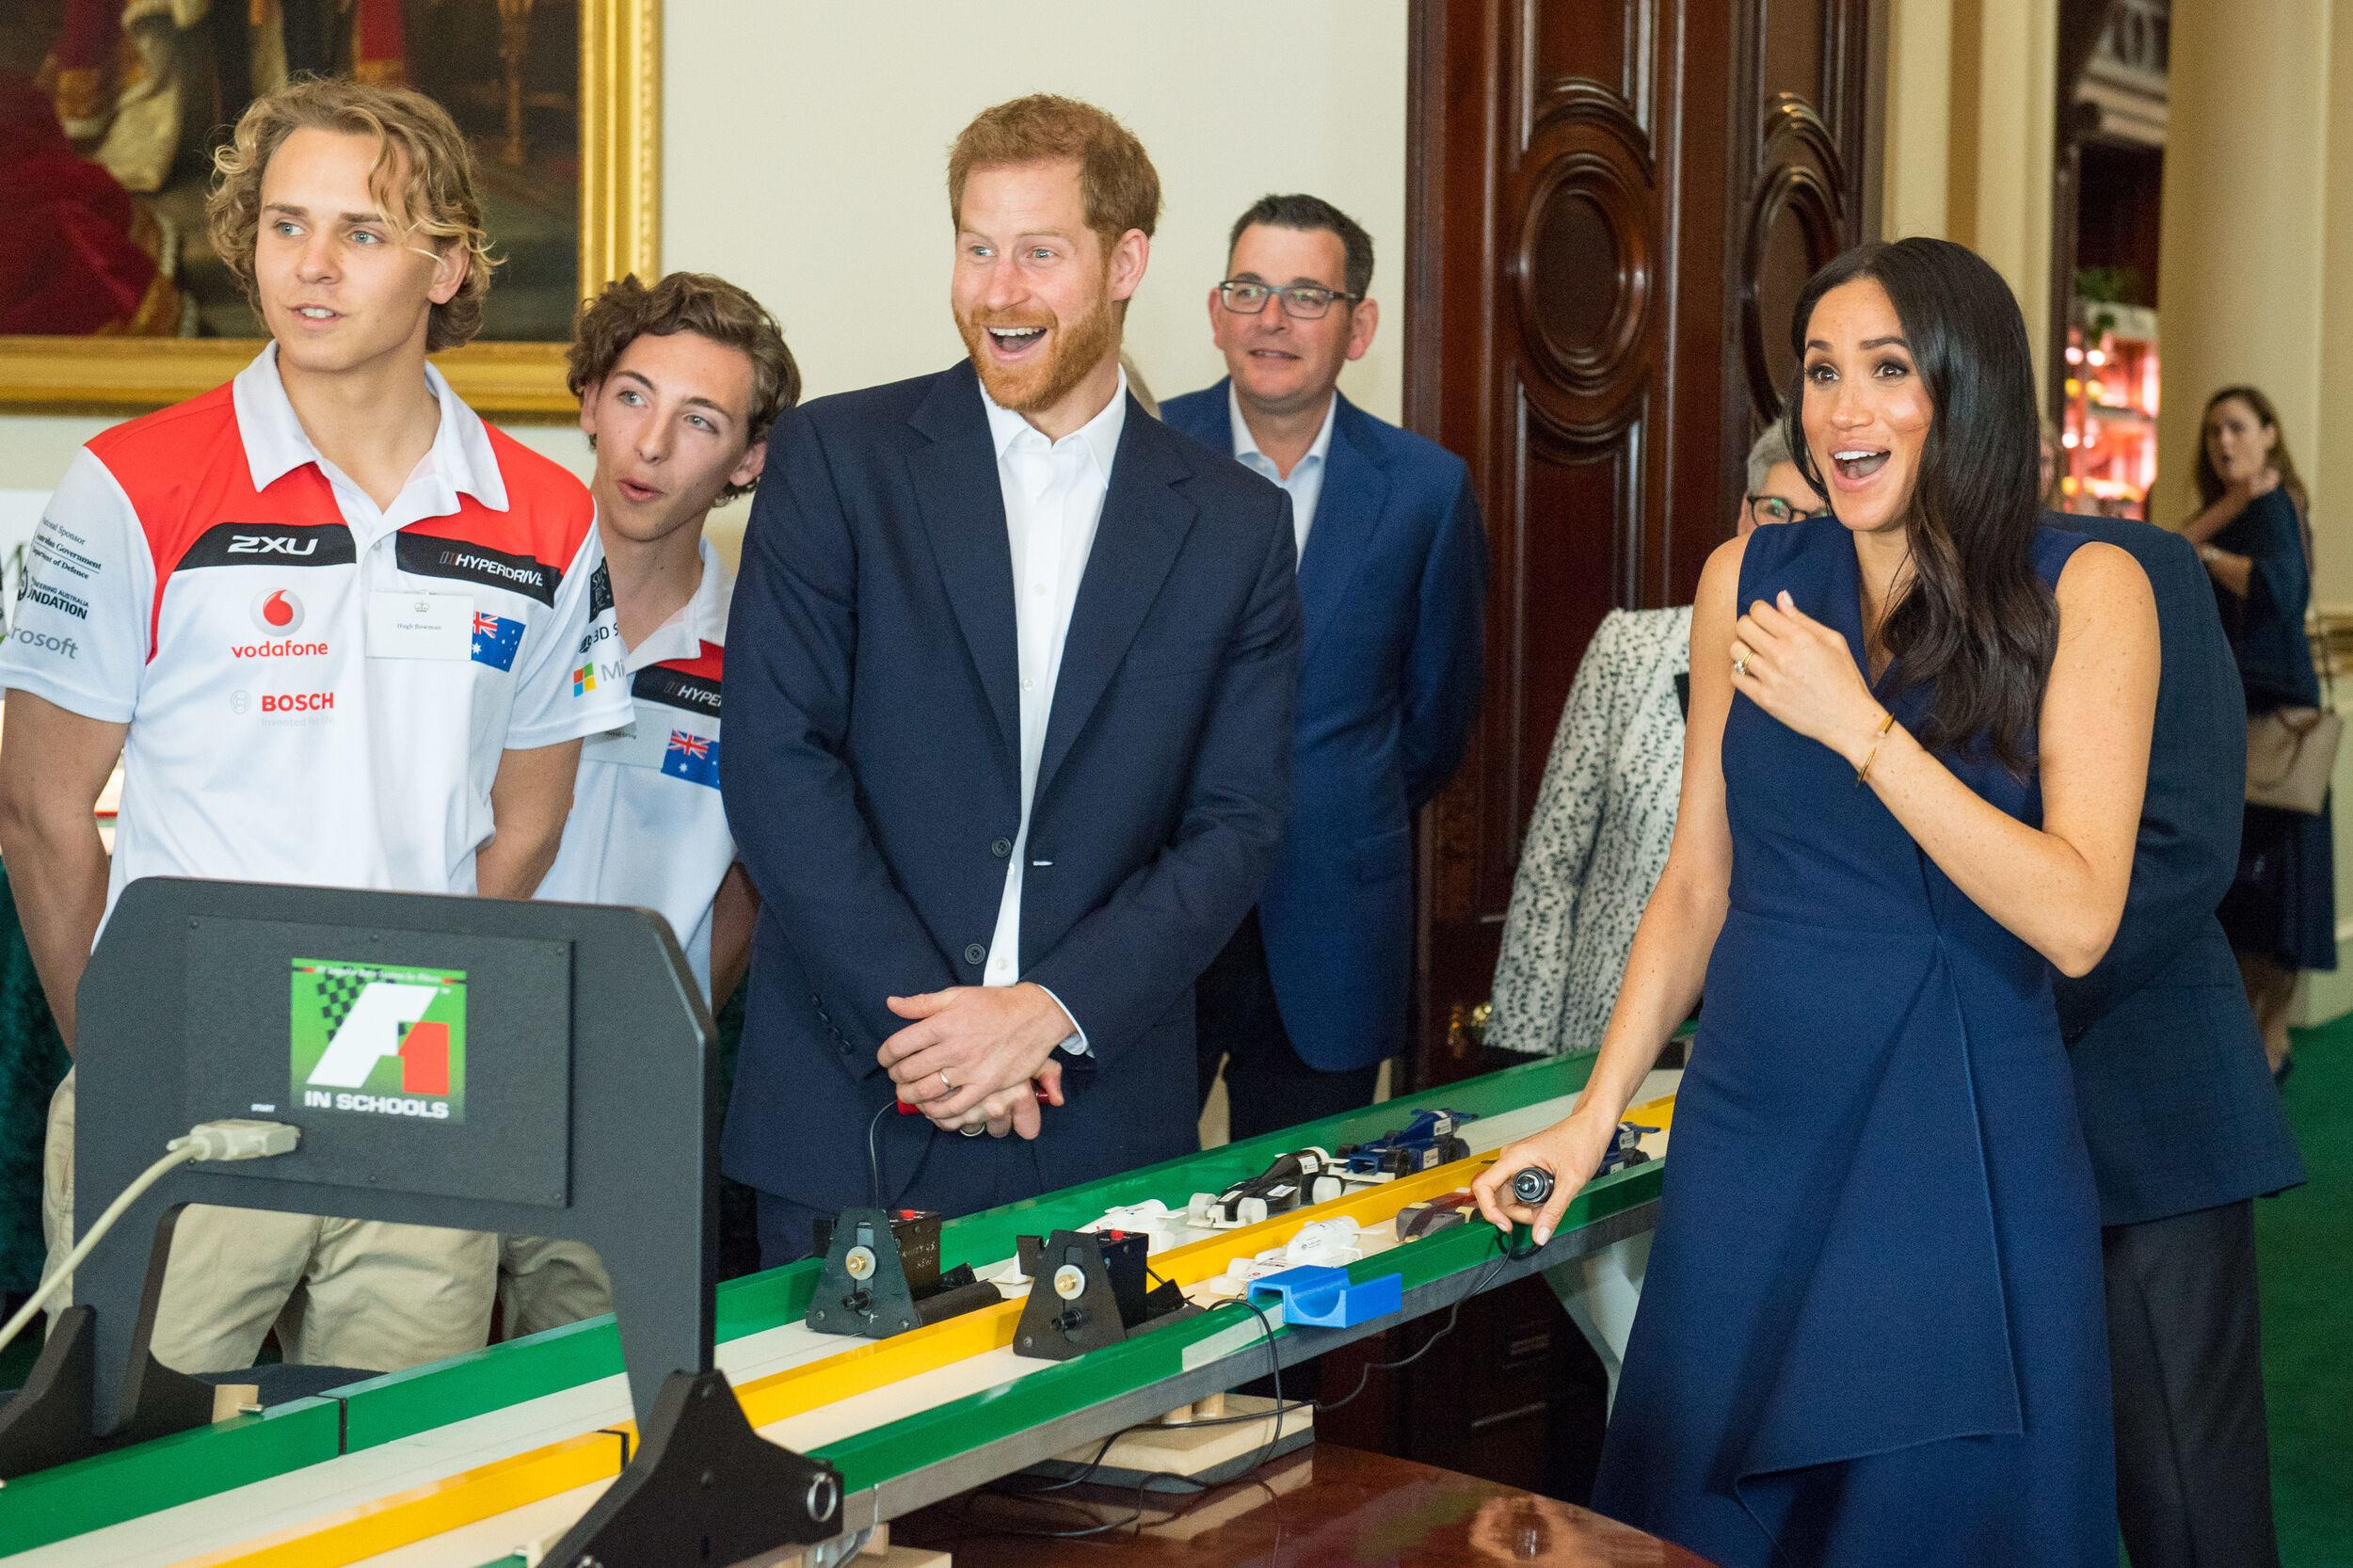 The Duke and Duchess of Sussex react after starting model Formula 1 cars at a demonstration by Formula 1 in Schools, at a reception given by the Governor of Victoria, at Government House during their visit to Melbourne, on the third day of the royal couple's visit to Australia.